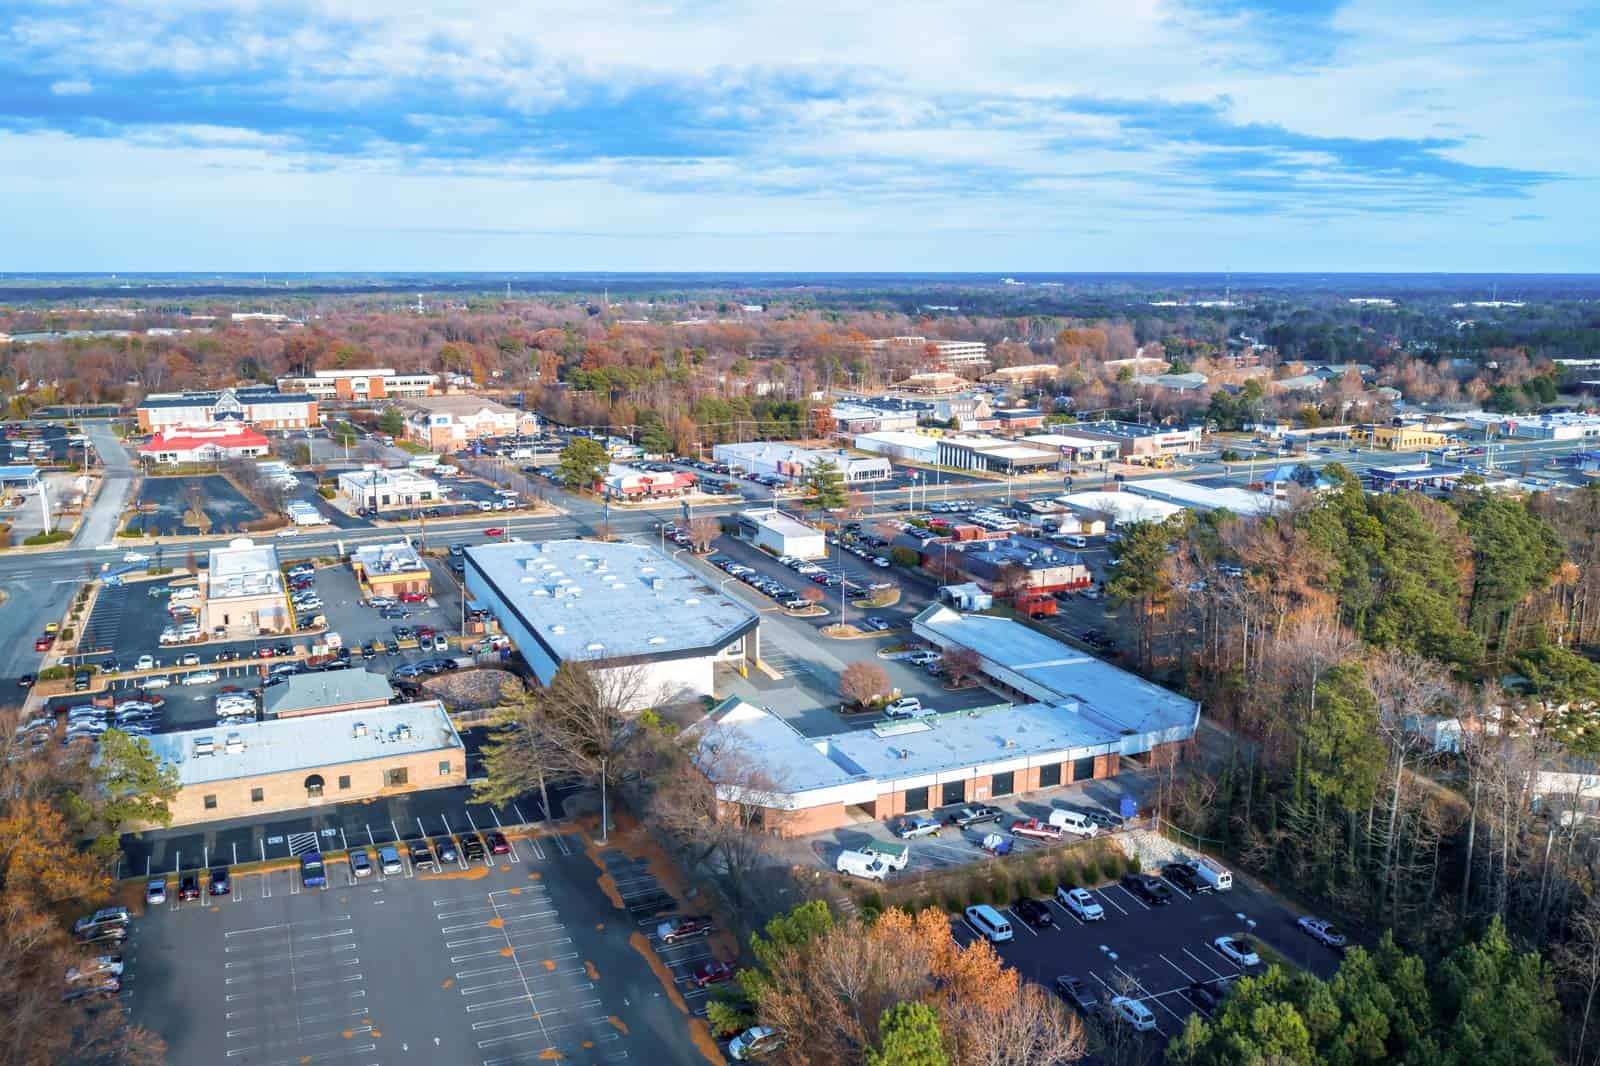 aerial overview photo of commercial real estate property in Richmond, VA